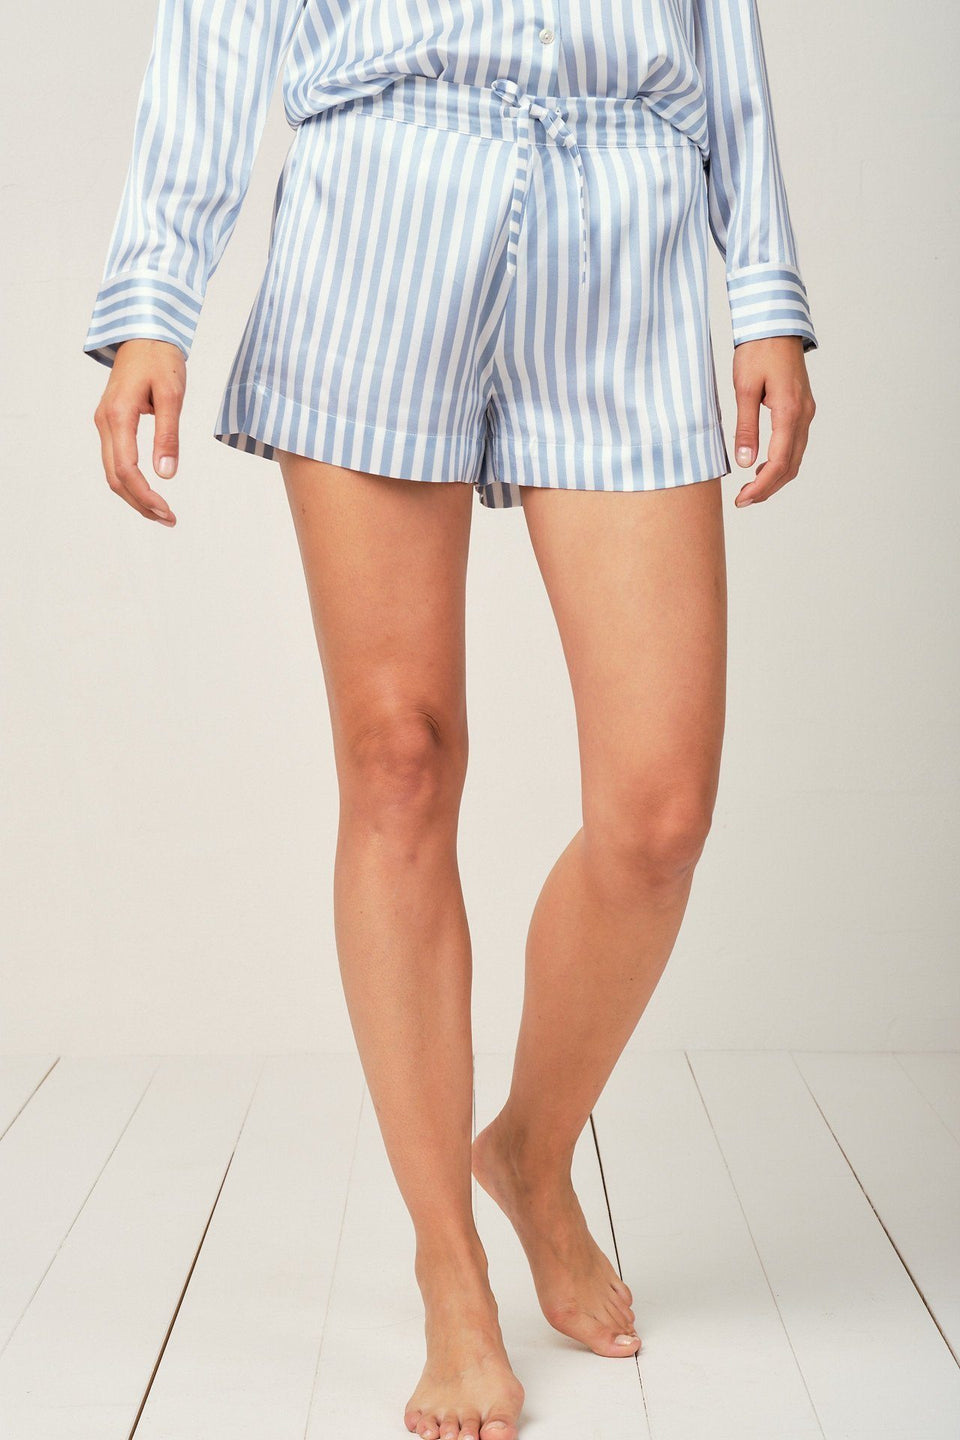 Alexandra Silk Pyjama in Candy Blue Stripes - Short Loungewear, Pyjama, Silk, Seide, Schlafanzug | RADICE